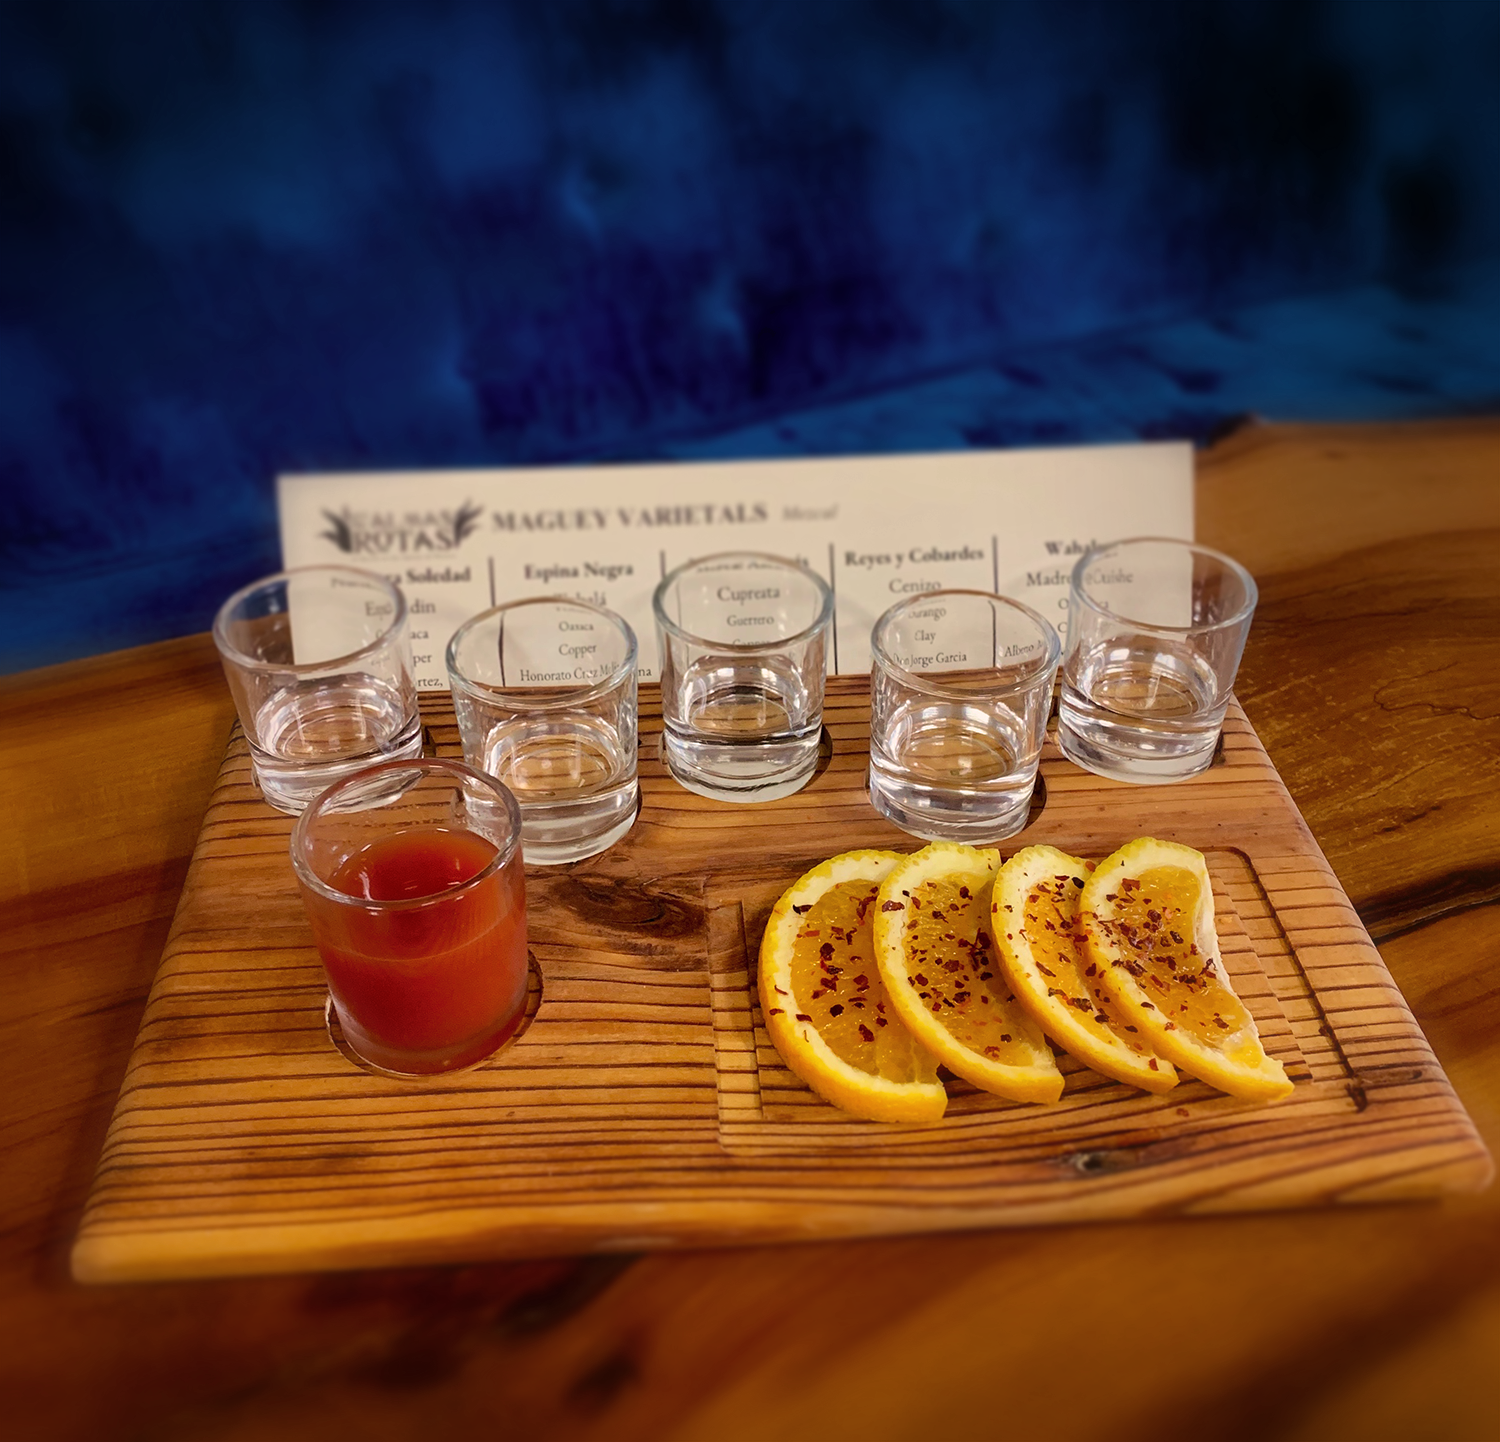 The Maguey flight is an excellent introduction to mezcal.